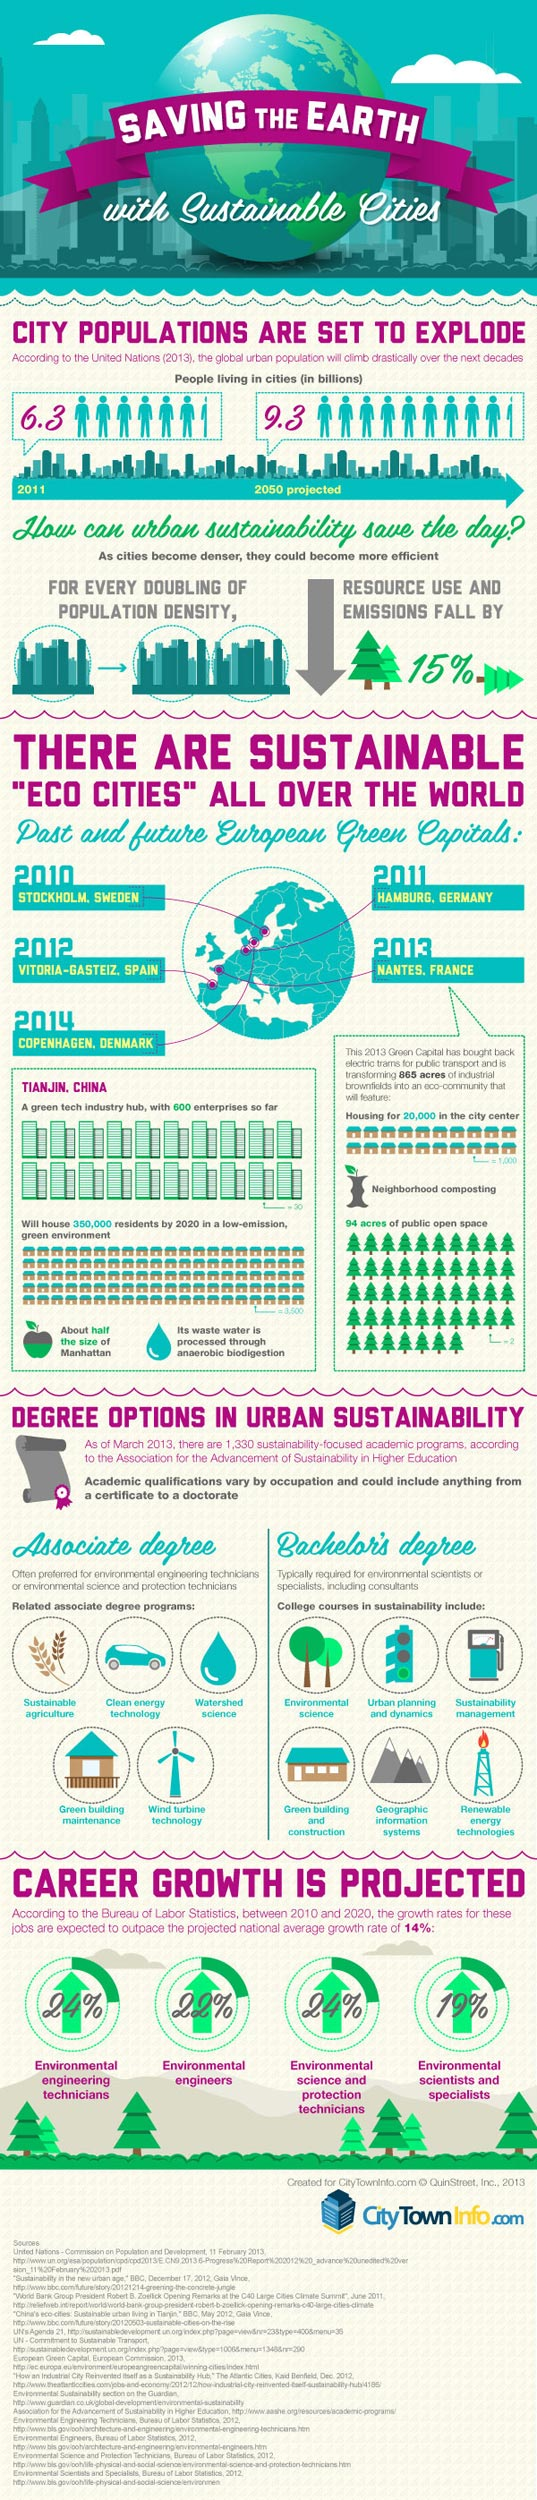 Sustainable-Cities-Infographic-CityTownInfo-2